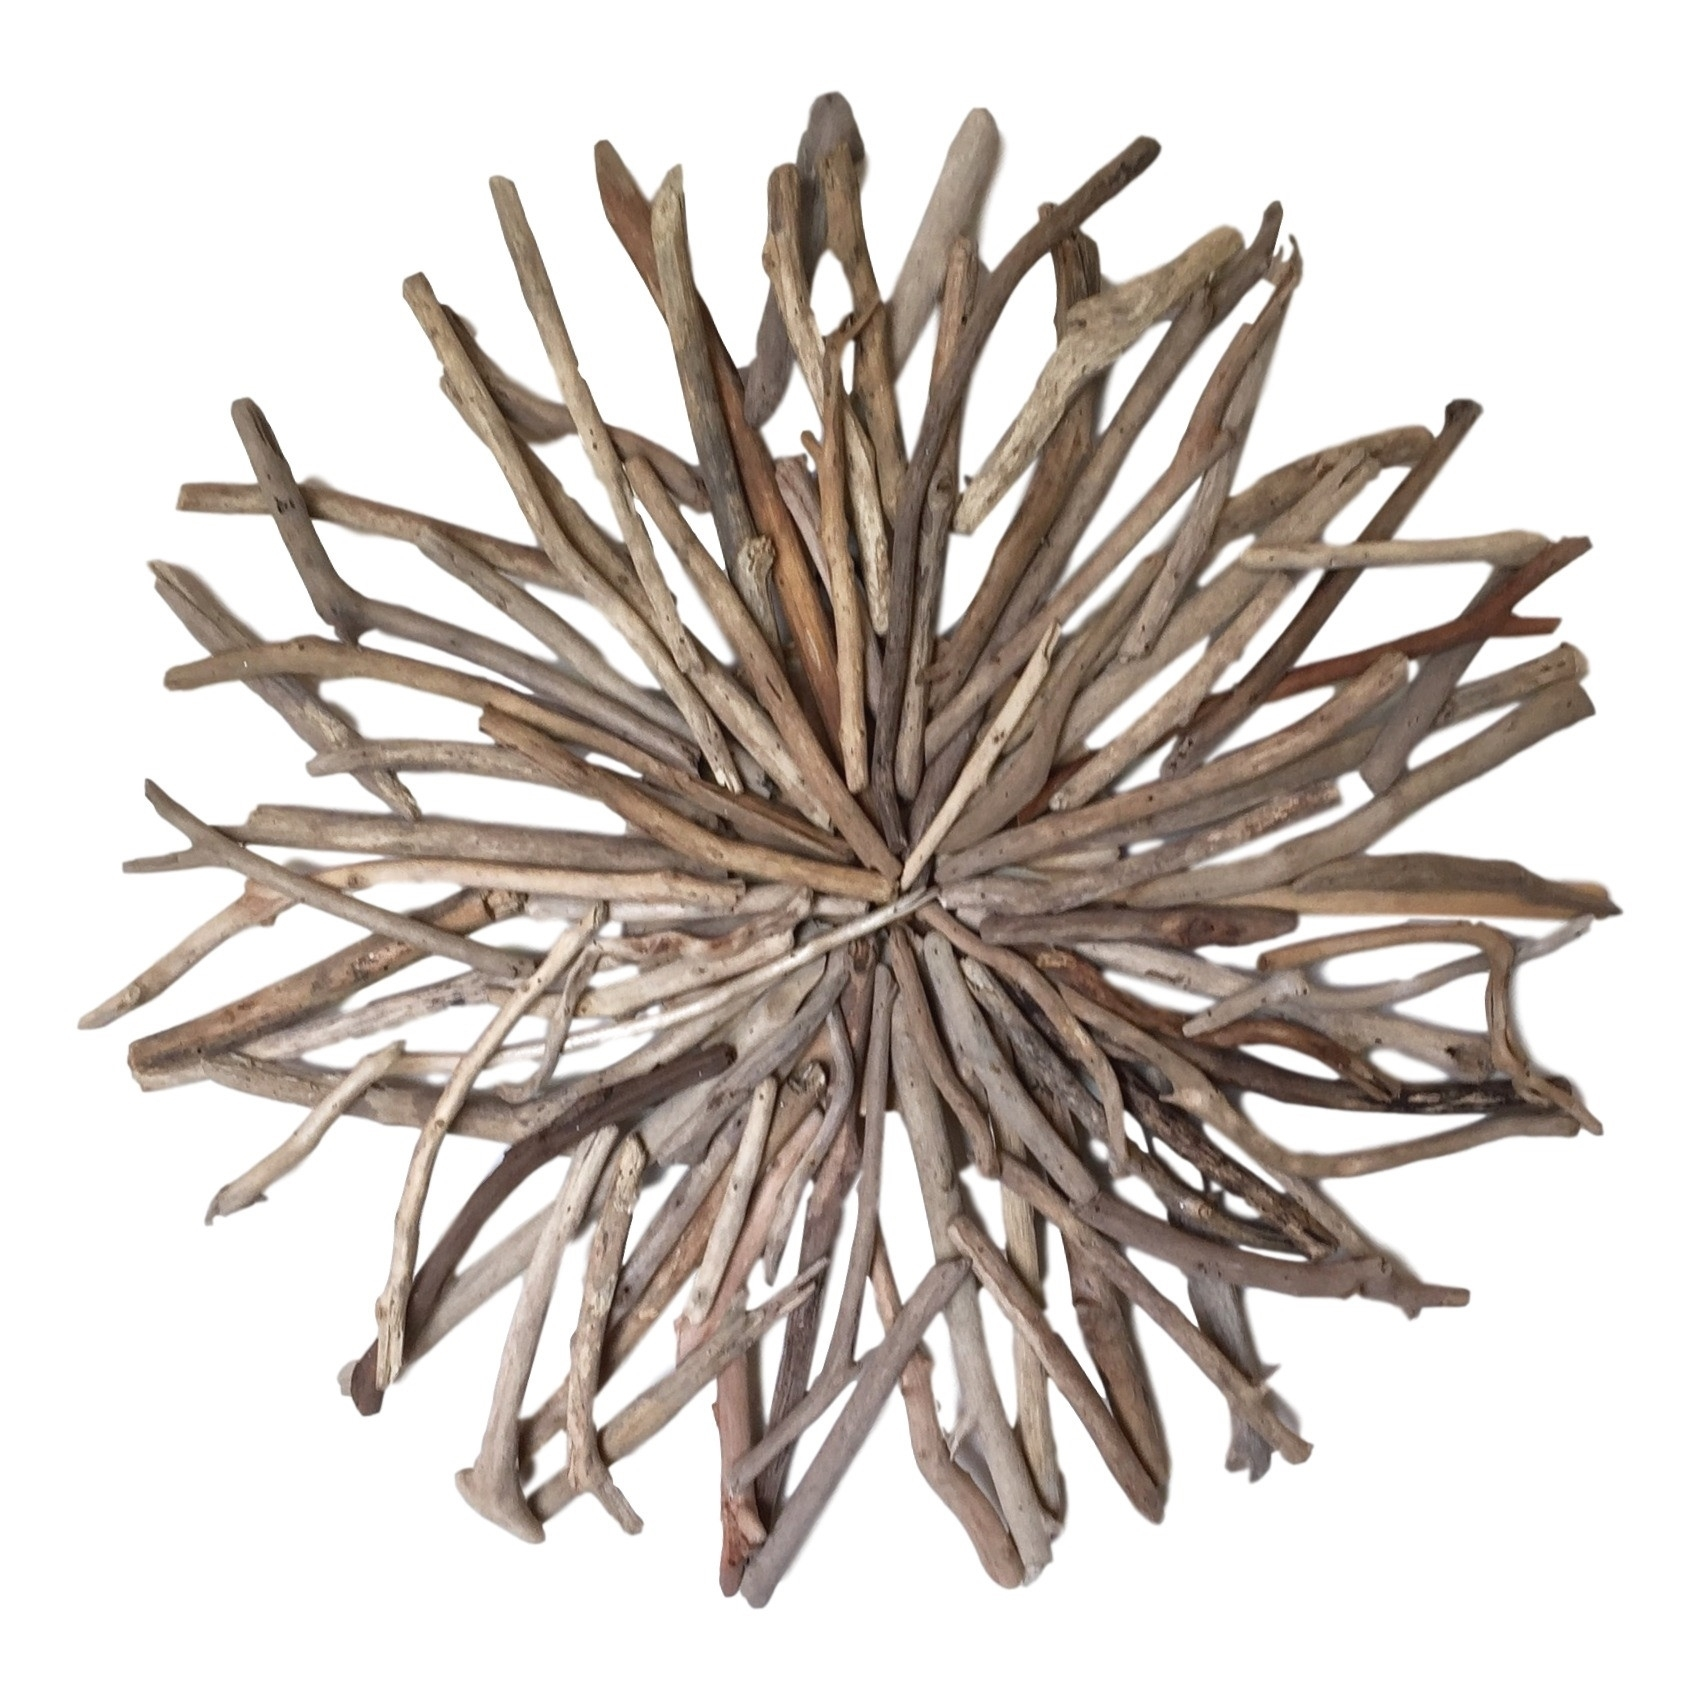 Driftwood Random Round Wall Hanging Art Indoor Outdoor 80Cm Diameter For Best And Newest Round Wall Art (View 5 of 20)